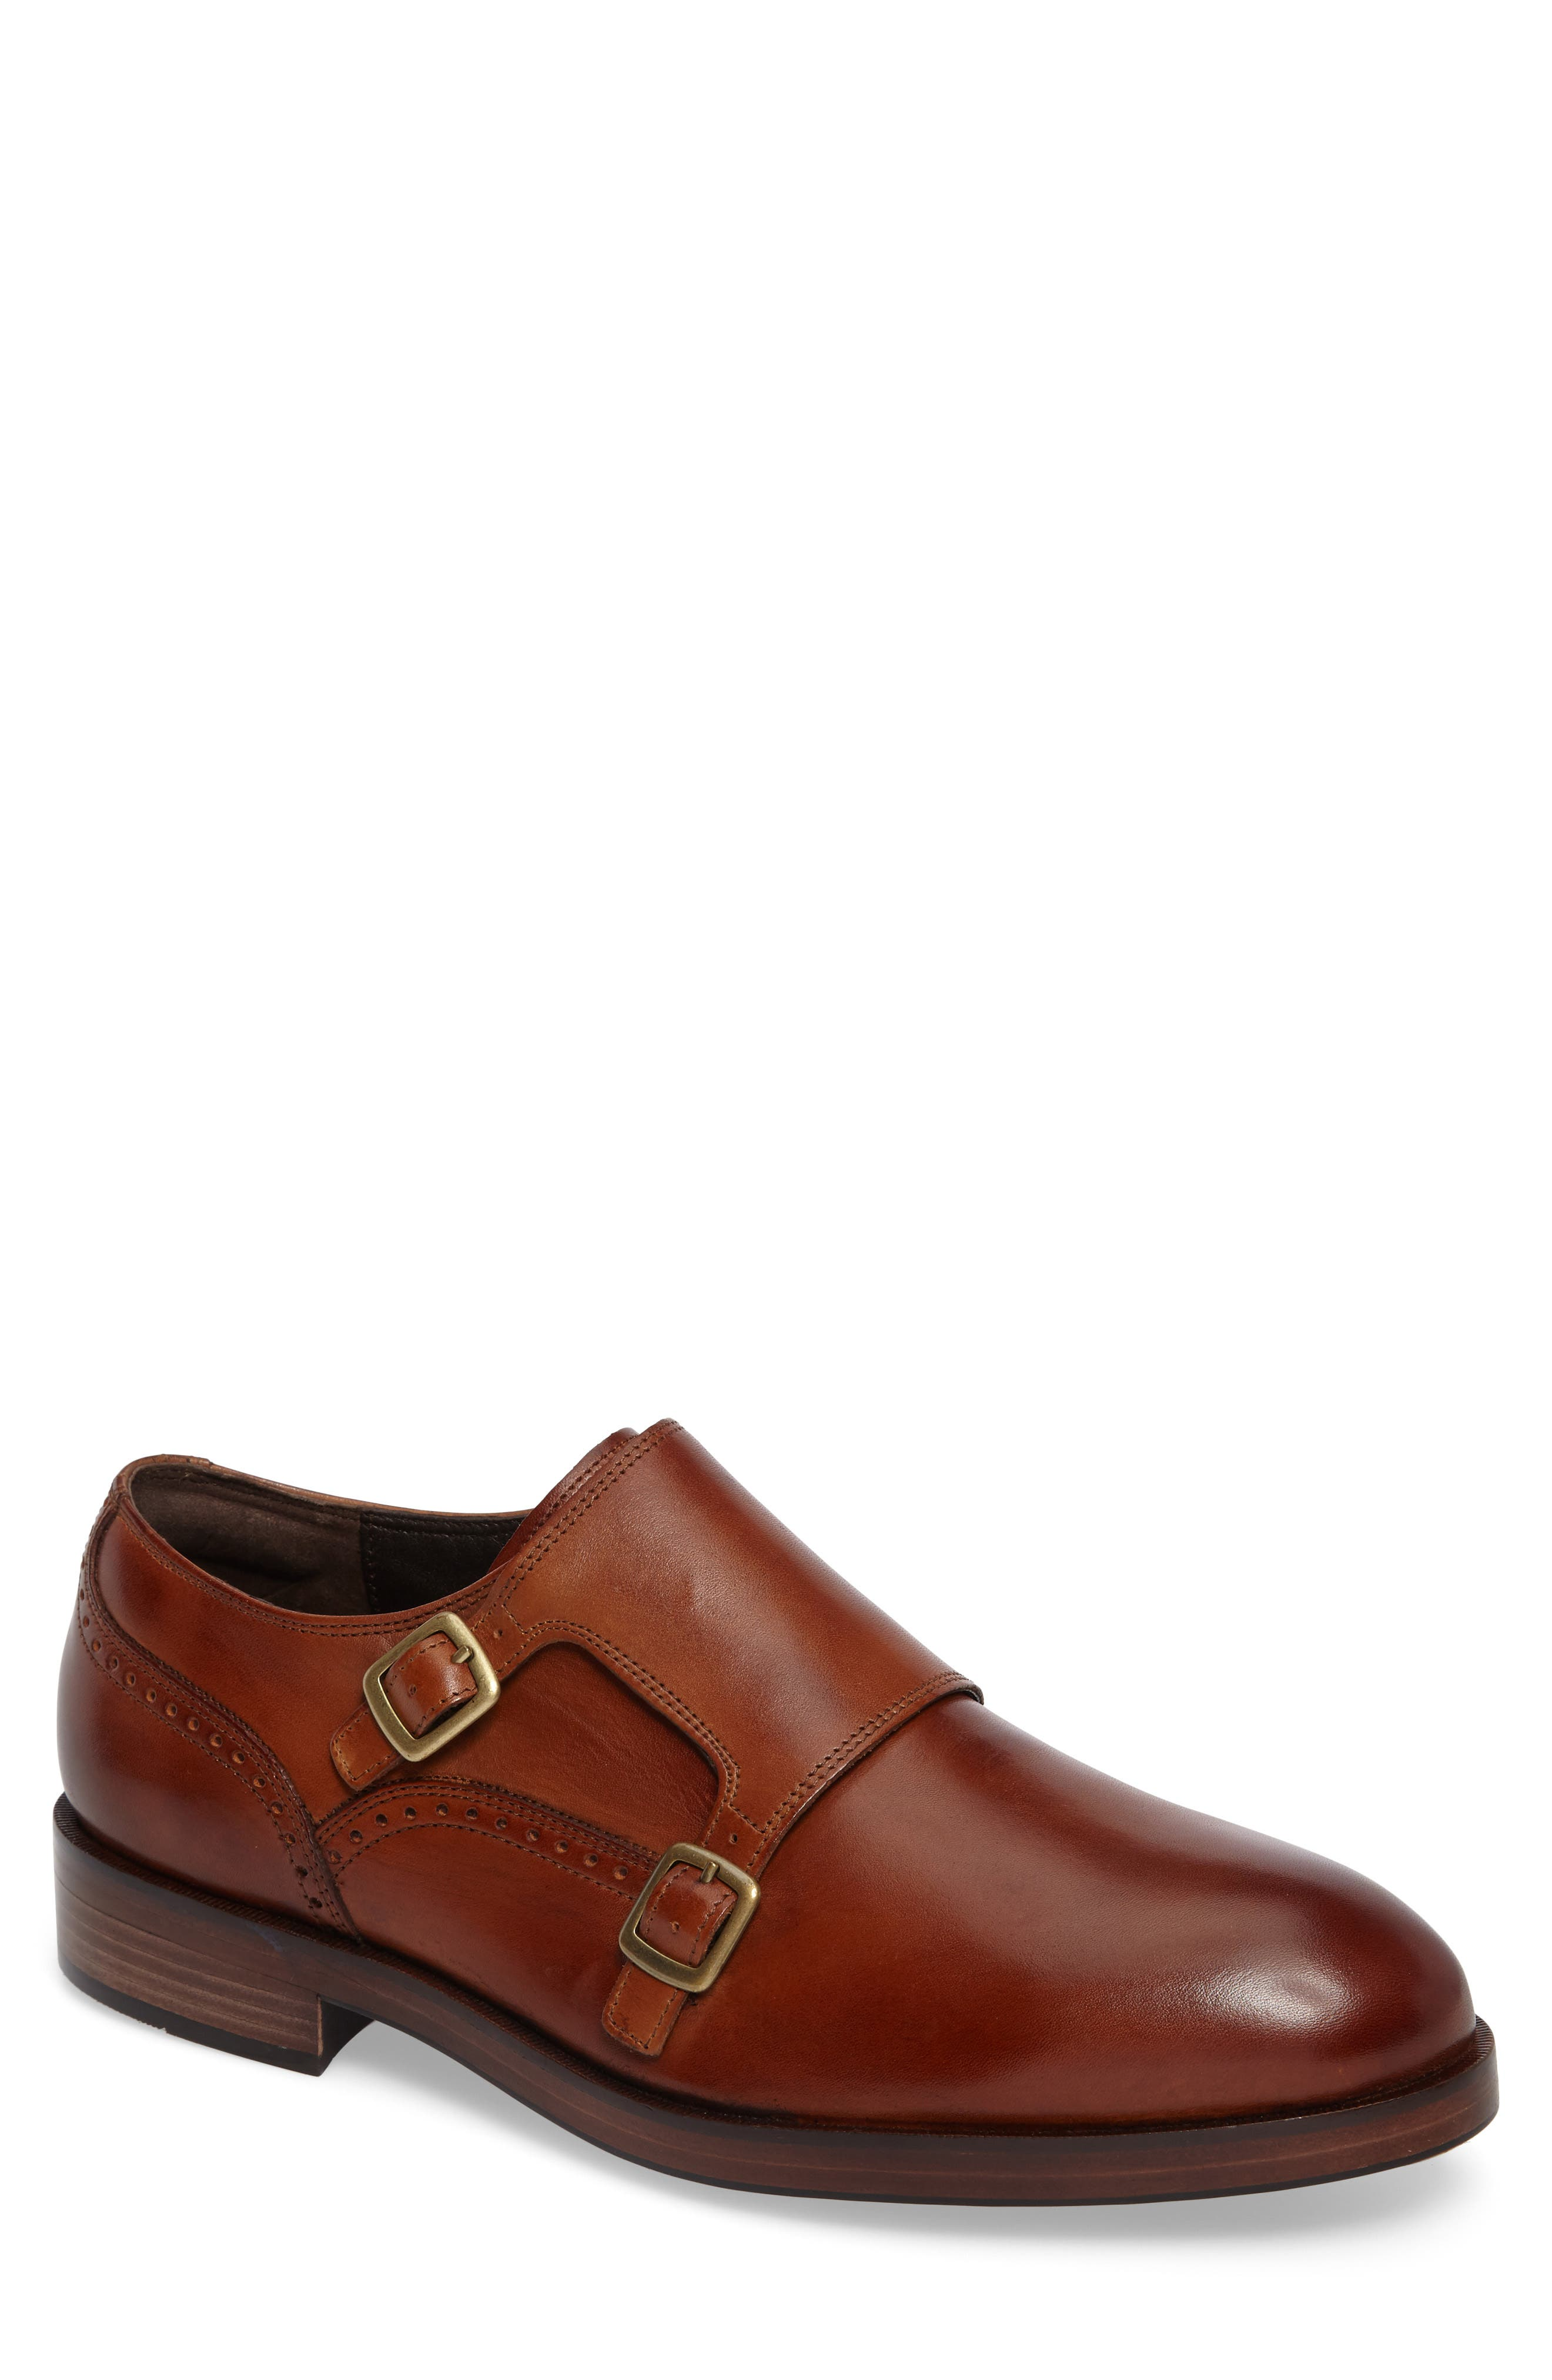 'Harrison' Double Monk Strap Shoe,                             Alternate thumbnail 2, color,                             BRITISH TAN LEATHER